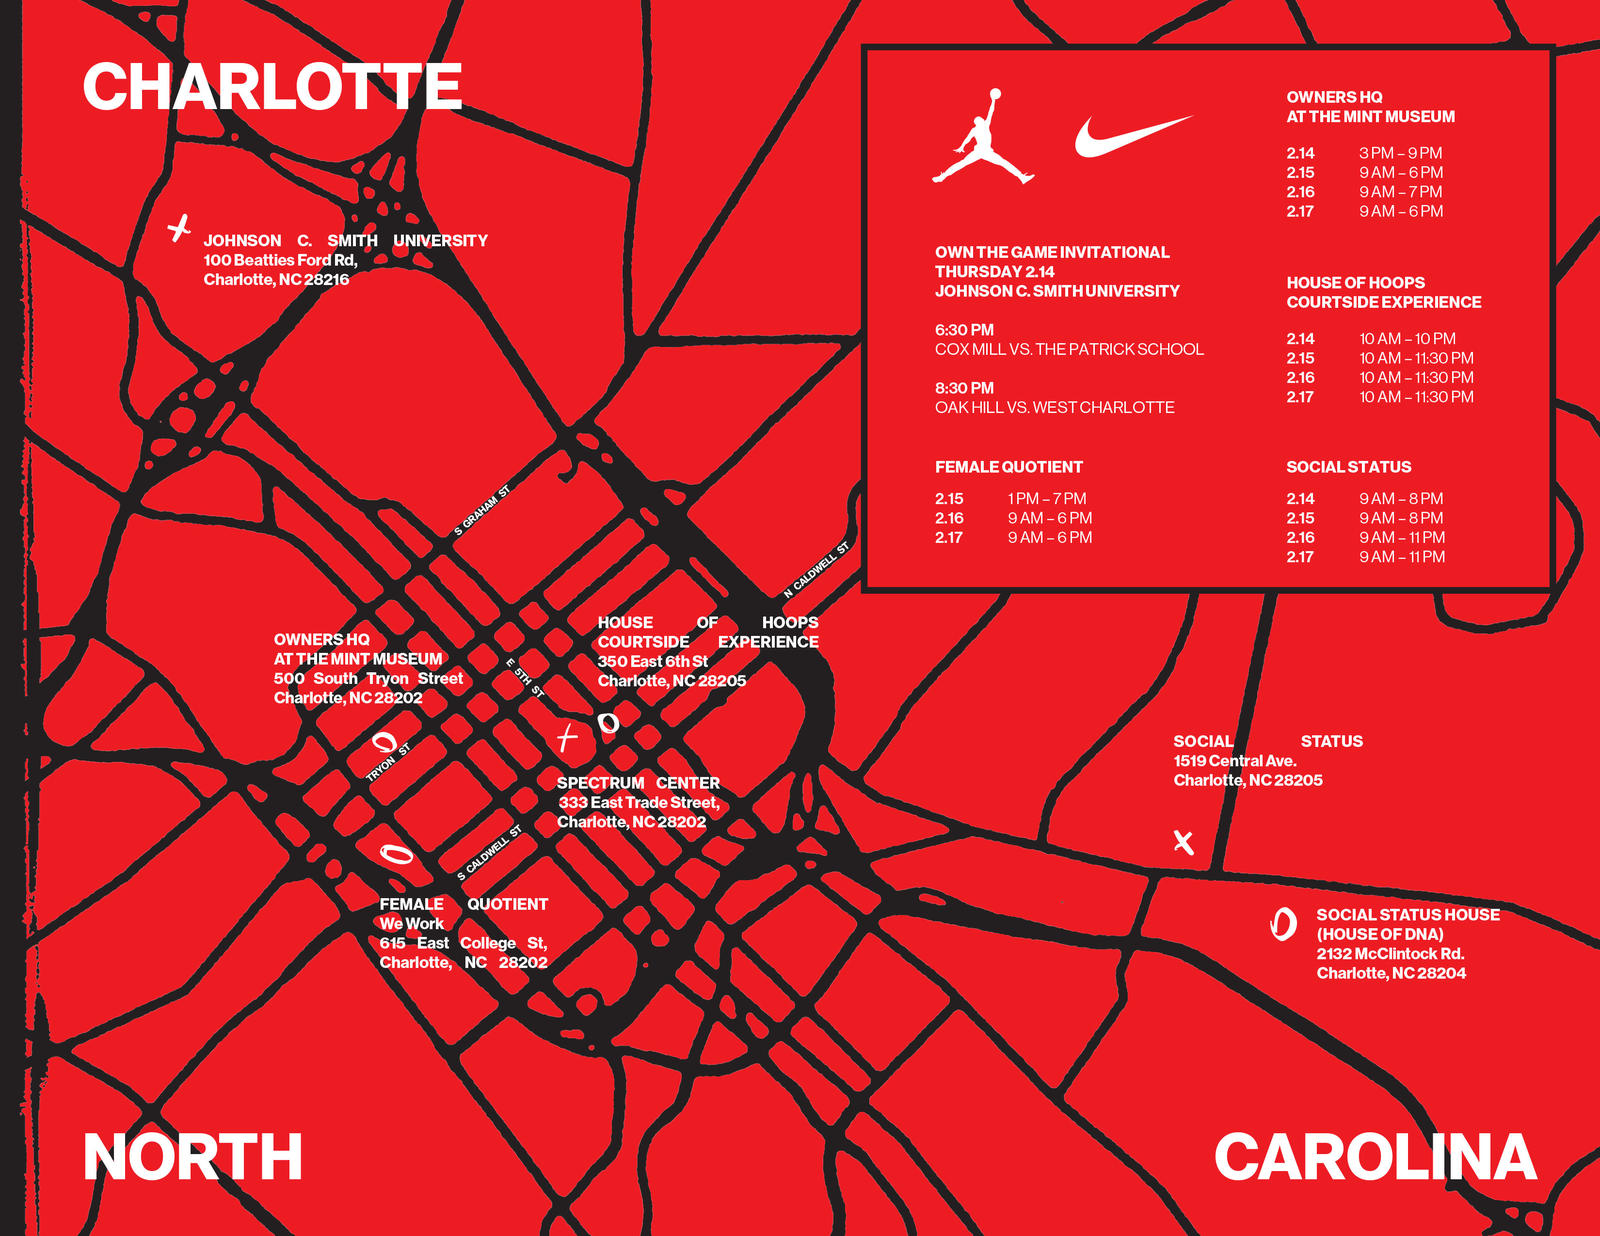 Nike and Jordan Brand Take Over Charlotte for 2019 NBA All-Star Weekend 3